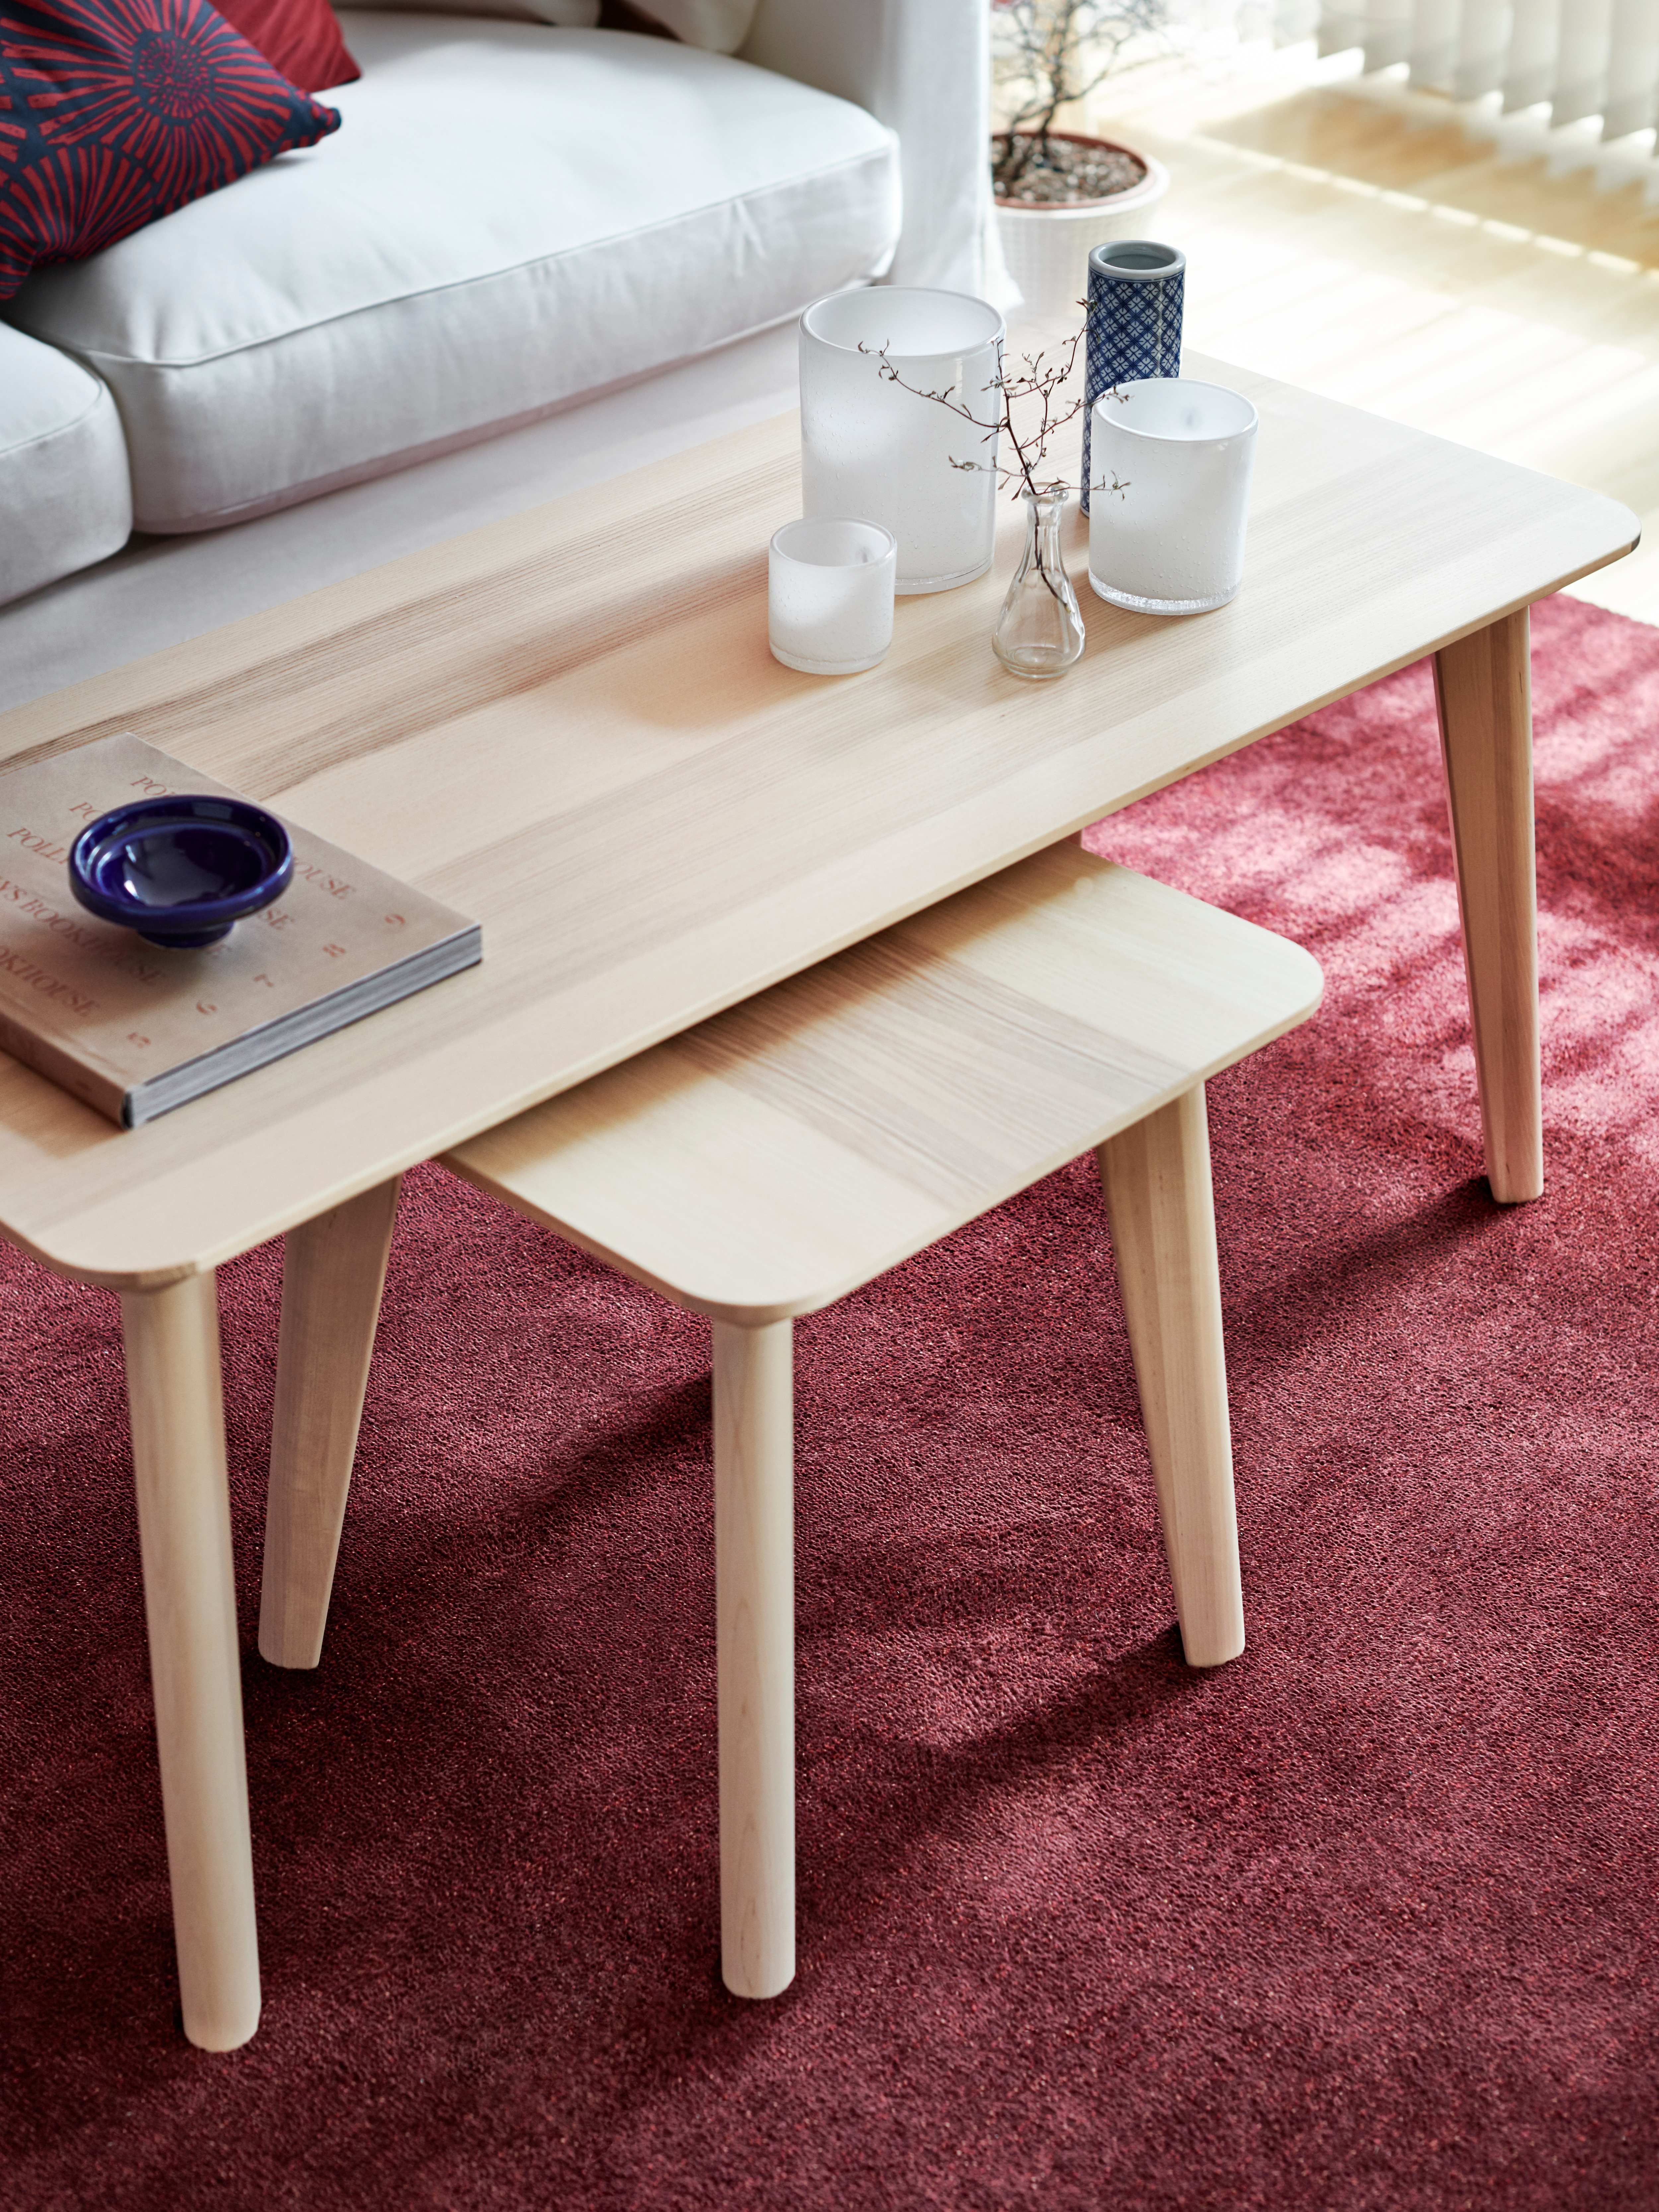 A LISABO table in ash veneer with a wooden stool beneath it, various items on the table and a pink rug under it.